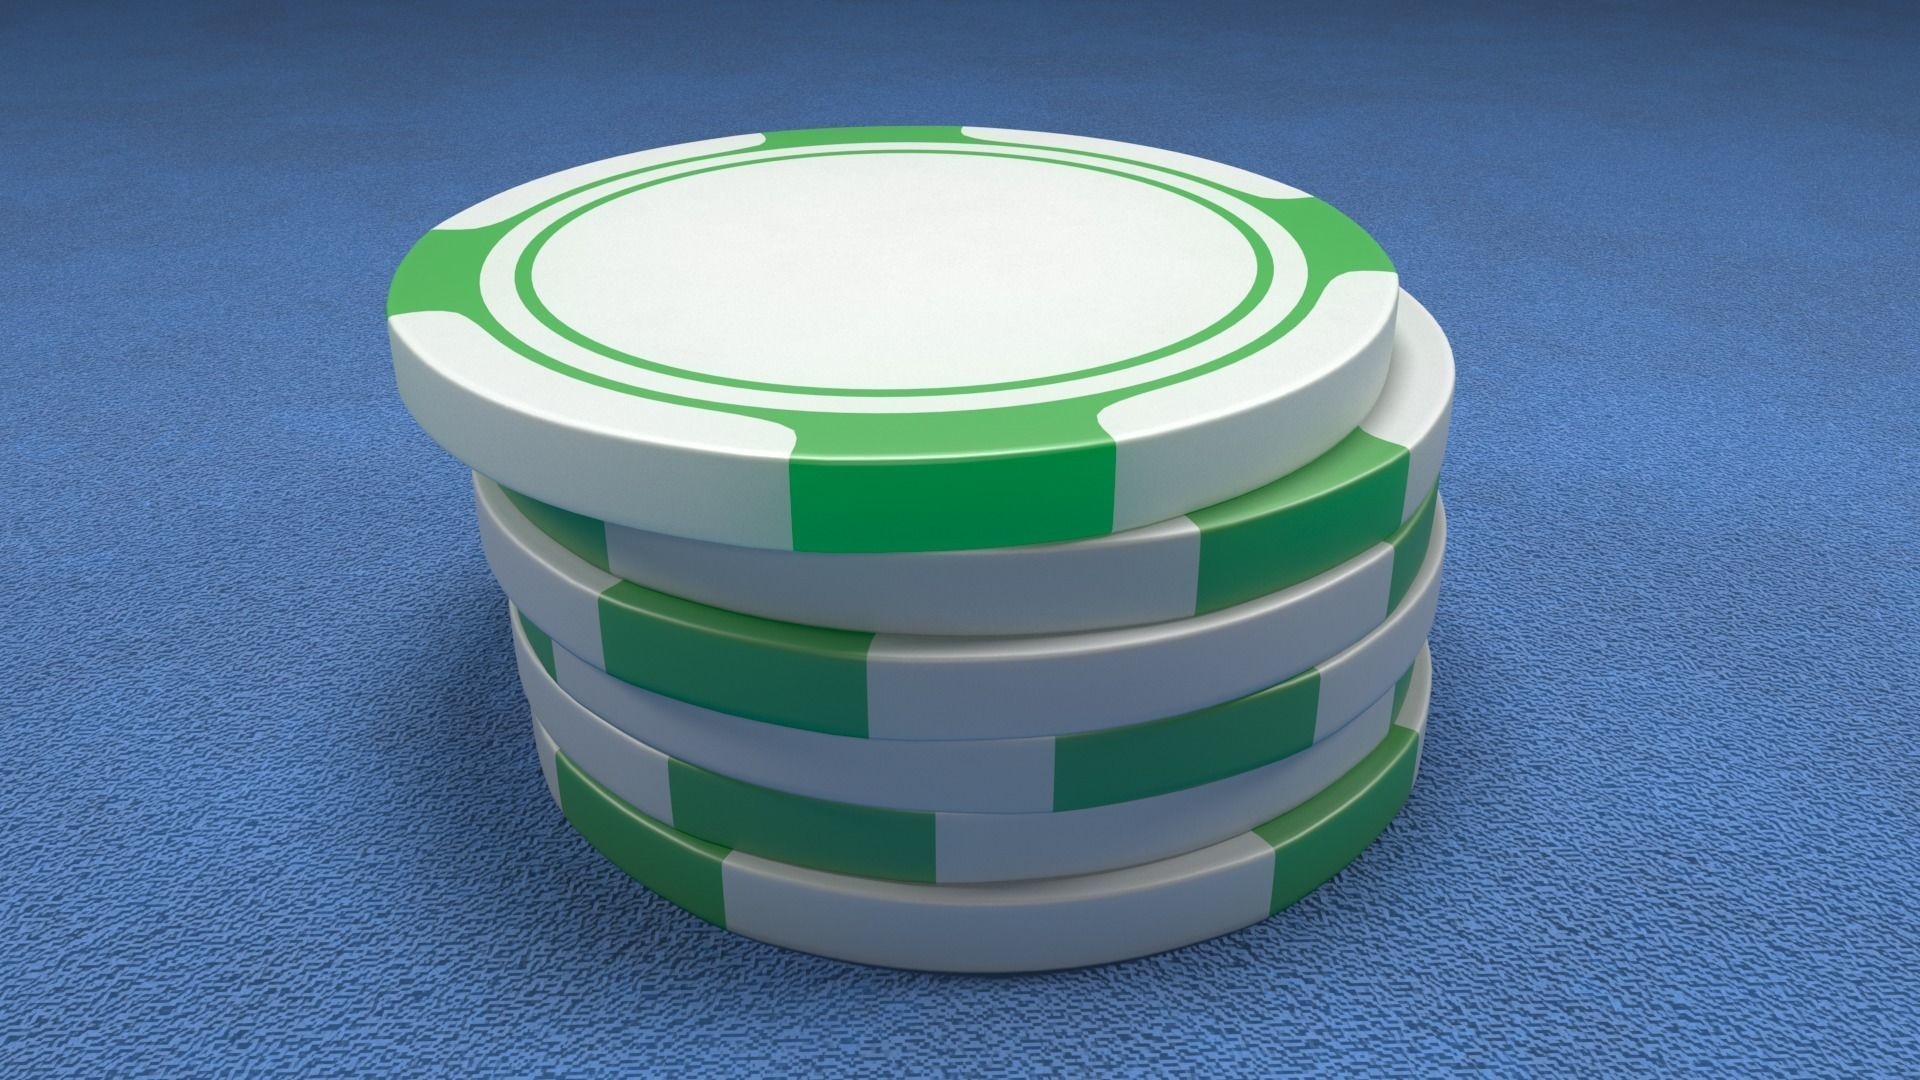 Poker Chips Green and White